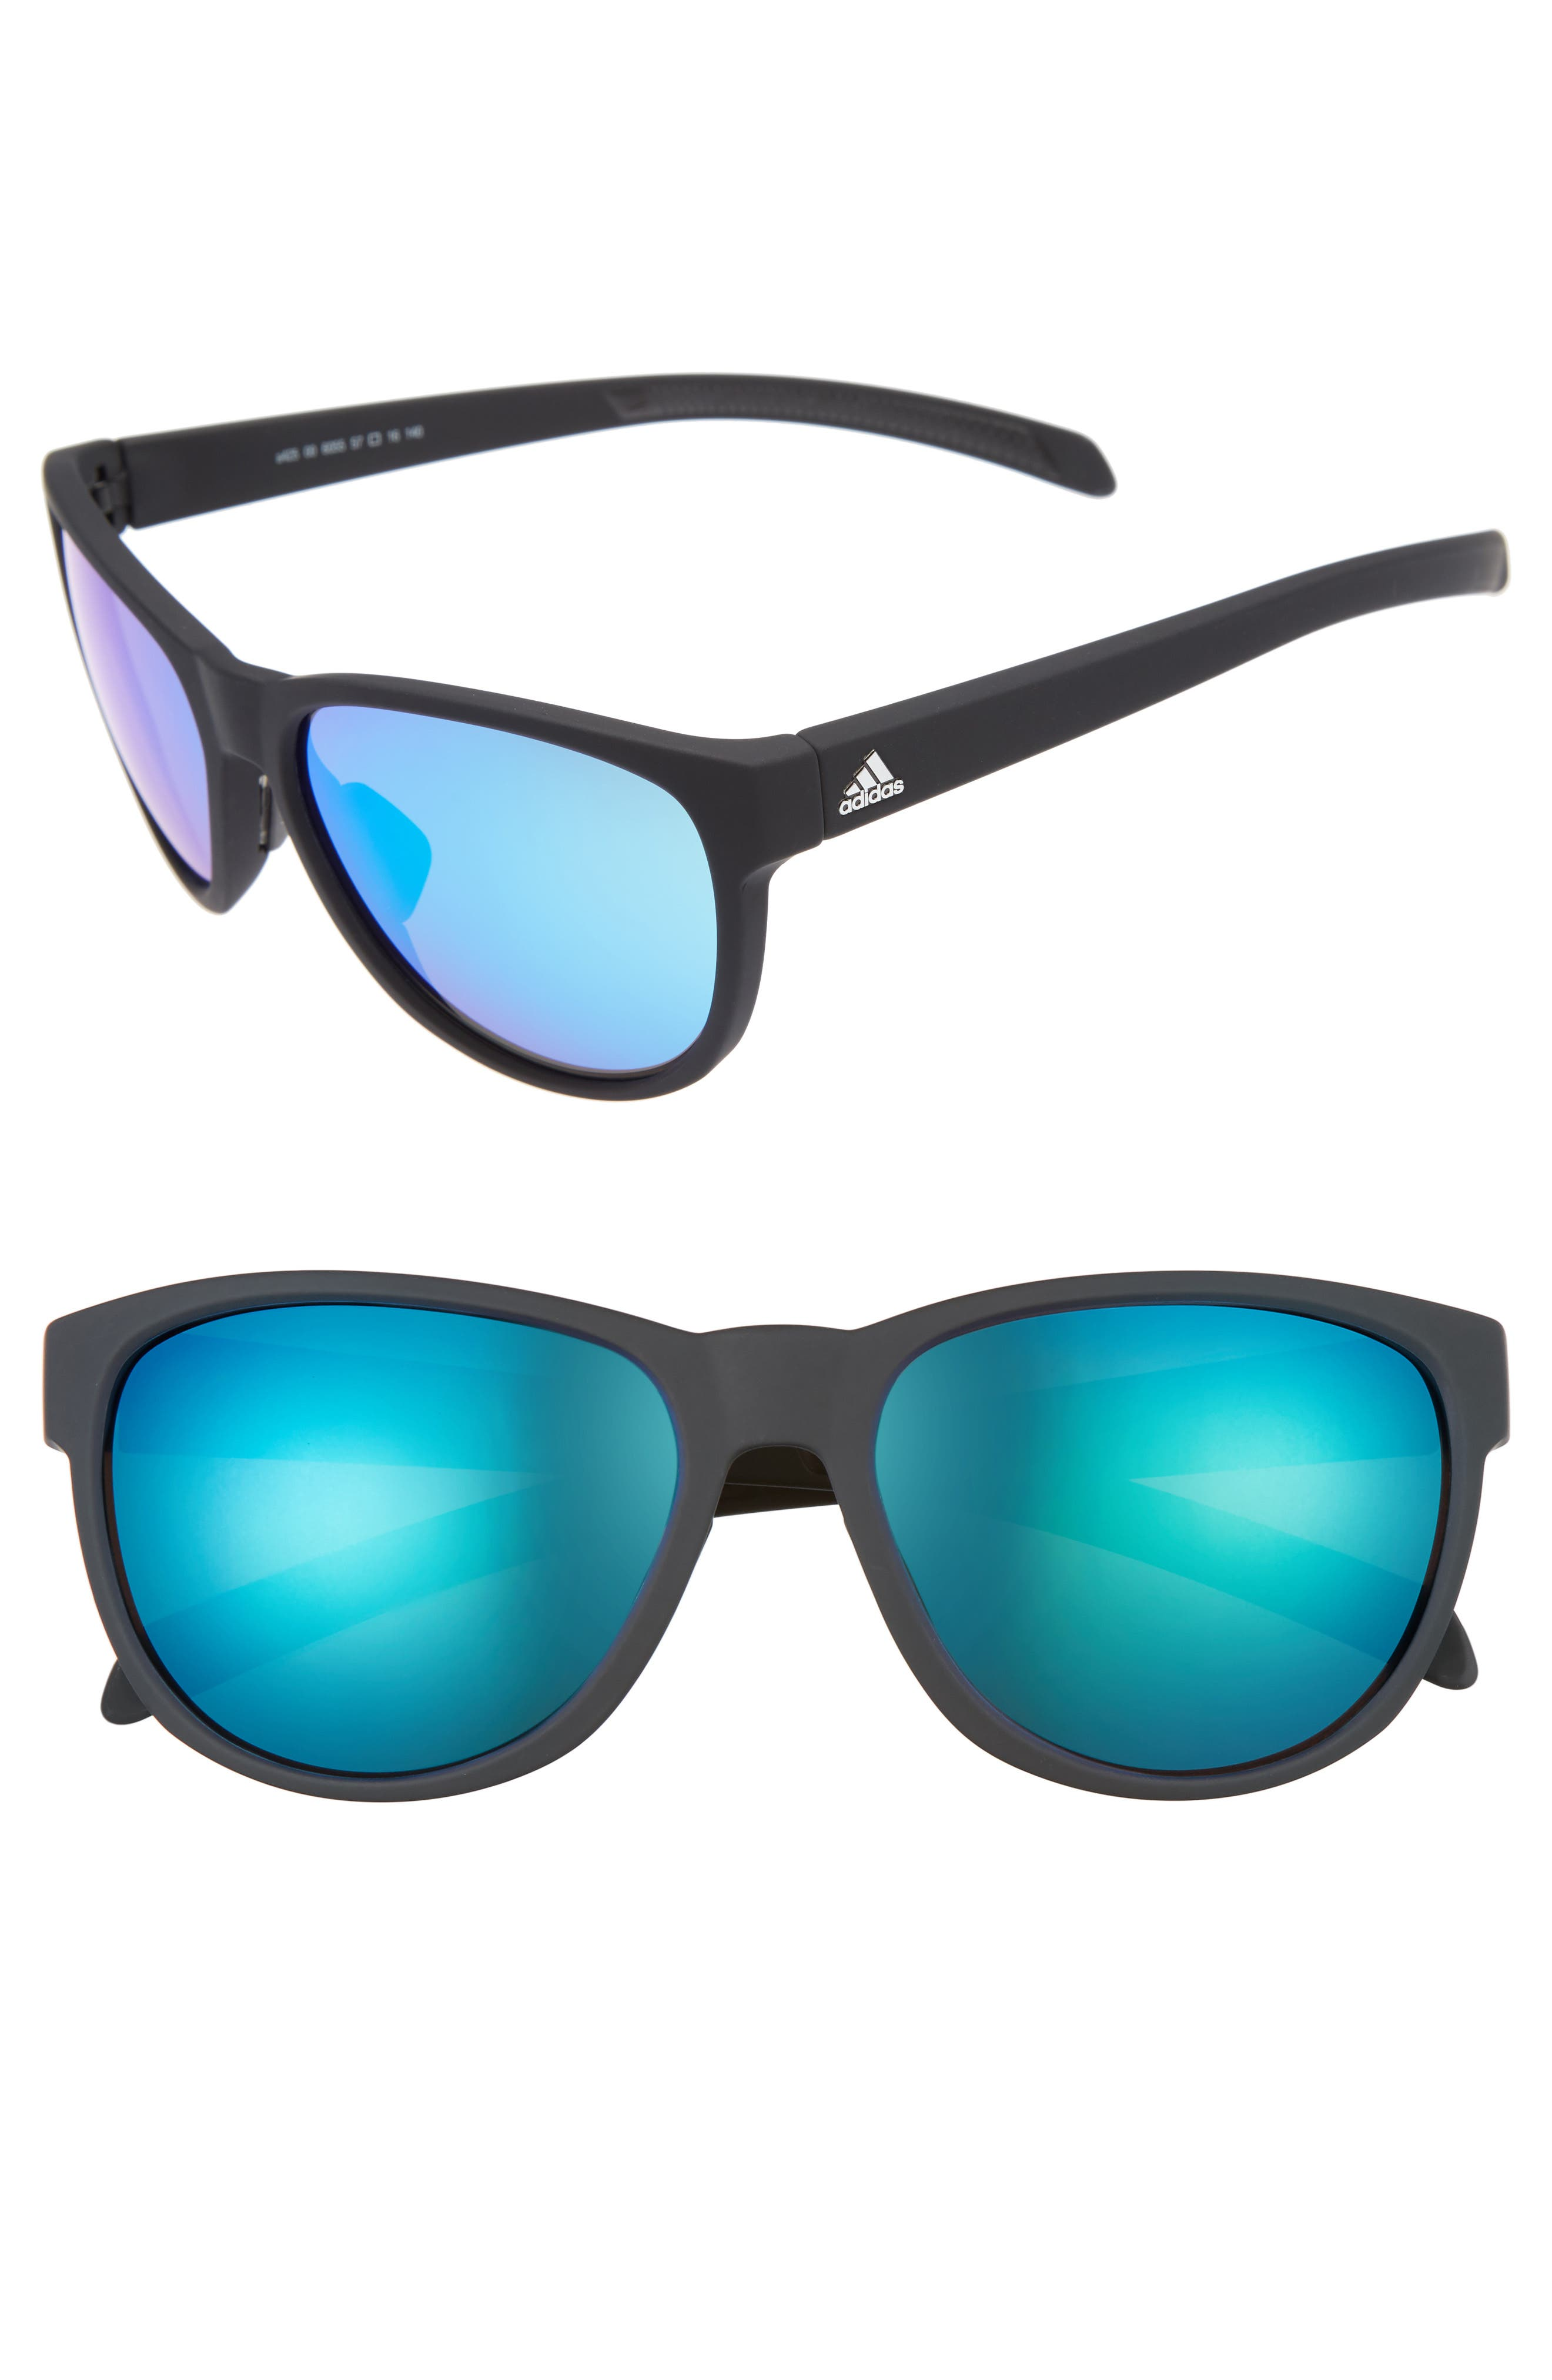 Wildcharge 57mm Mirrored Sunglasses,                             Main thumbnail 1, color,                             001